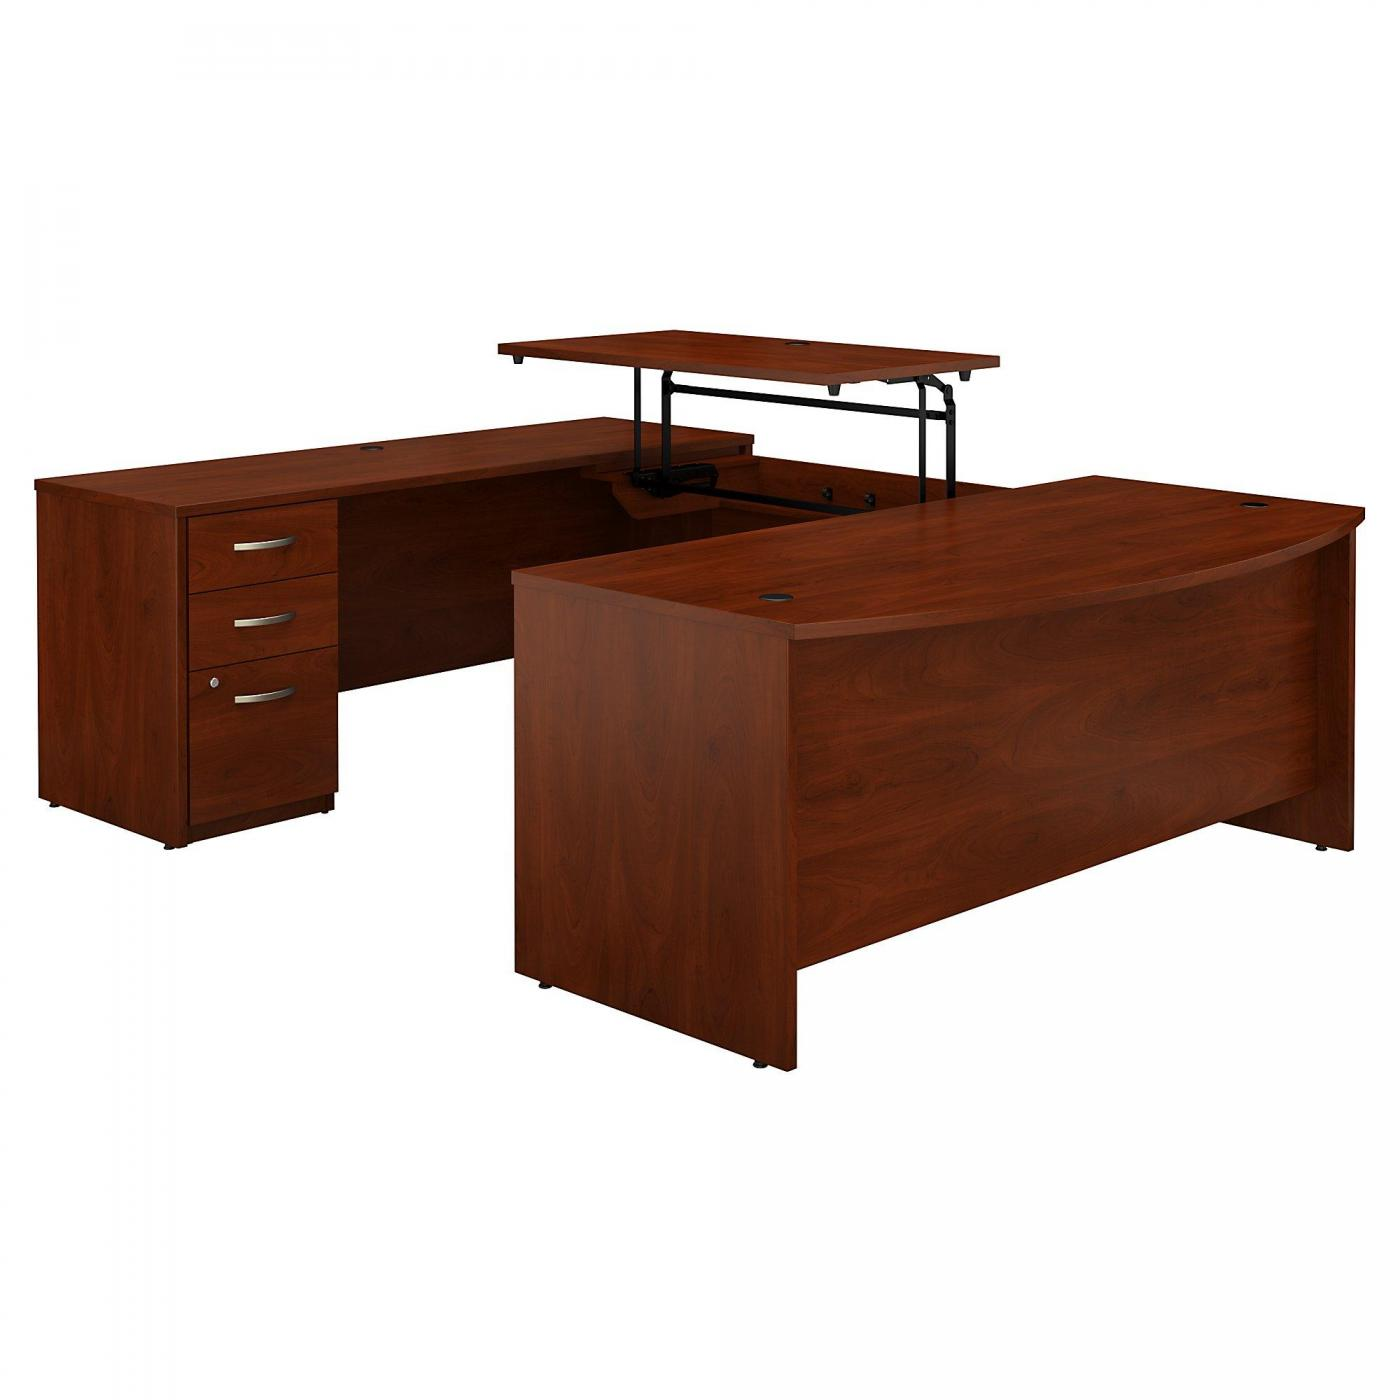 </b></font><b>BUSH BUSINESS FURNITURE SERIES C ELITE 72W X 36D 3 POSITION SIT TO STAND BOW FRONT U SHAPED DESK WITH 3 DRAWER FILE CABINET. FREE SHIPPING. VIDEO:</font> <p>RATING:&#11088;&#11088;&#11088;&#11088;&#11088;</b></font></b>